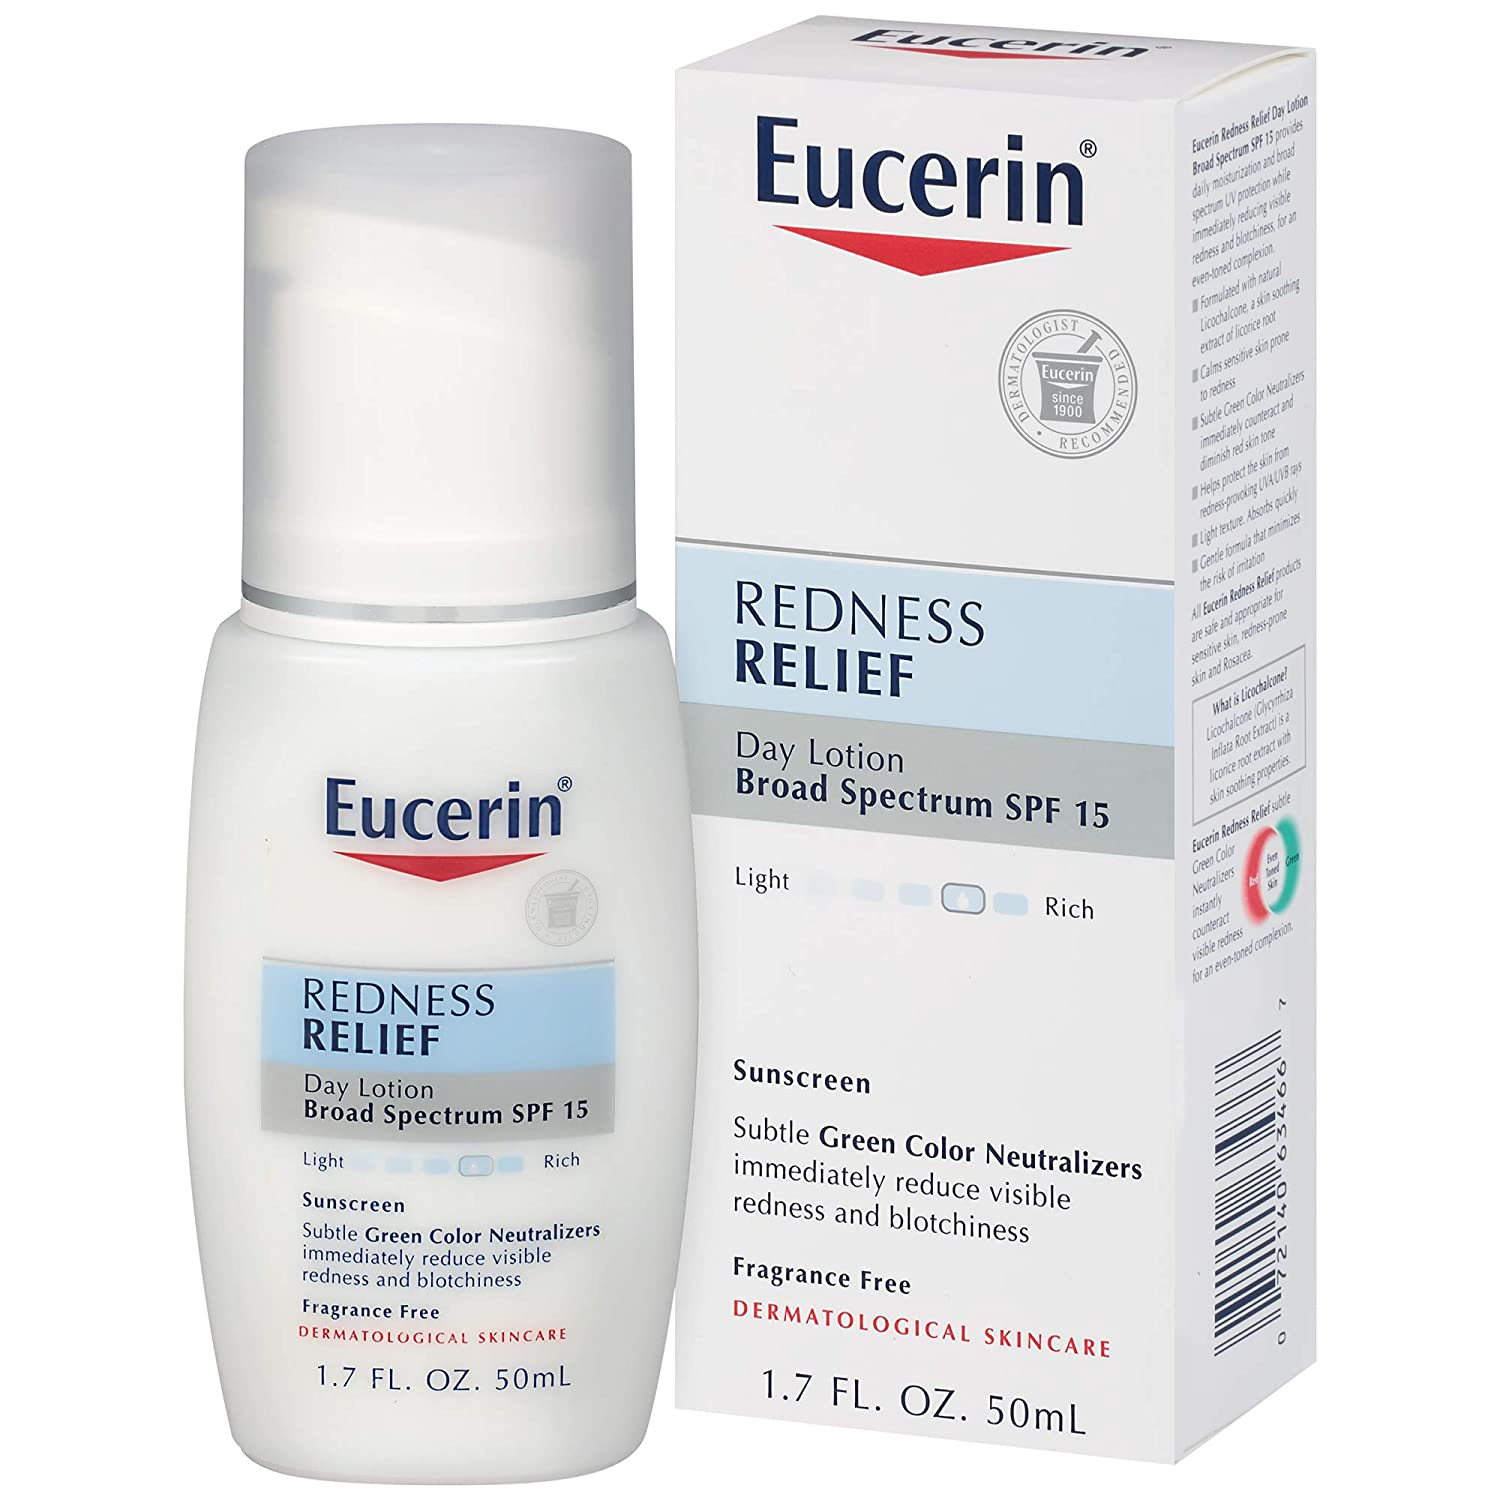 Eucerin Redness Relief Day Lotion Broad Spectrum SPF 15 1.7 Fluid Ounce BEIERSDORF 969535